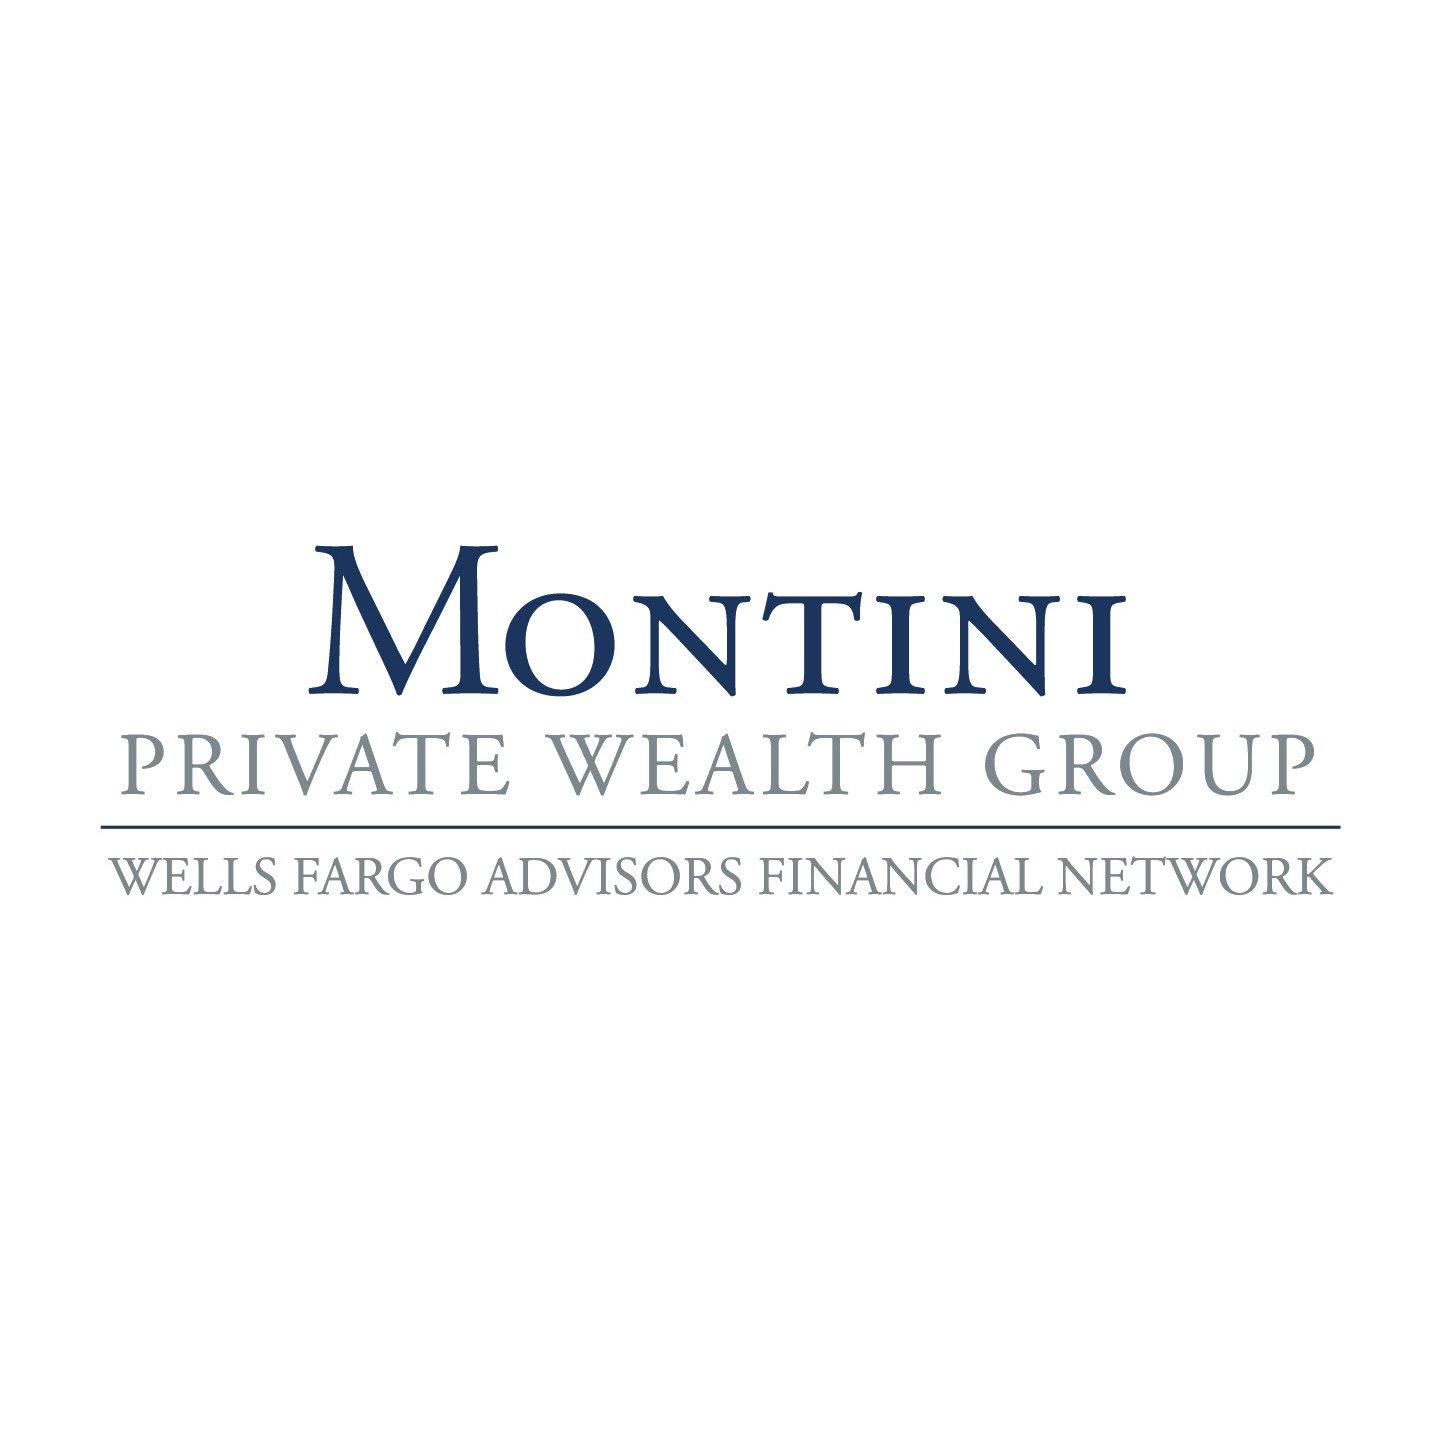 Montini Private Wealth Group - Wells Fargo Advisors Financial Network